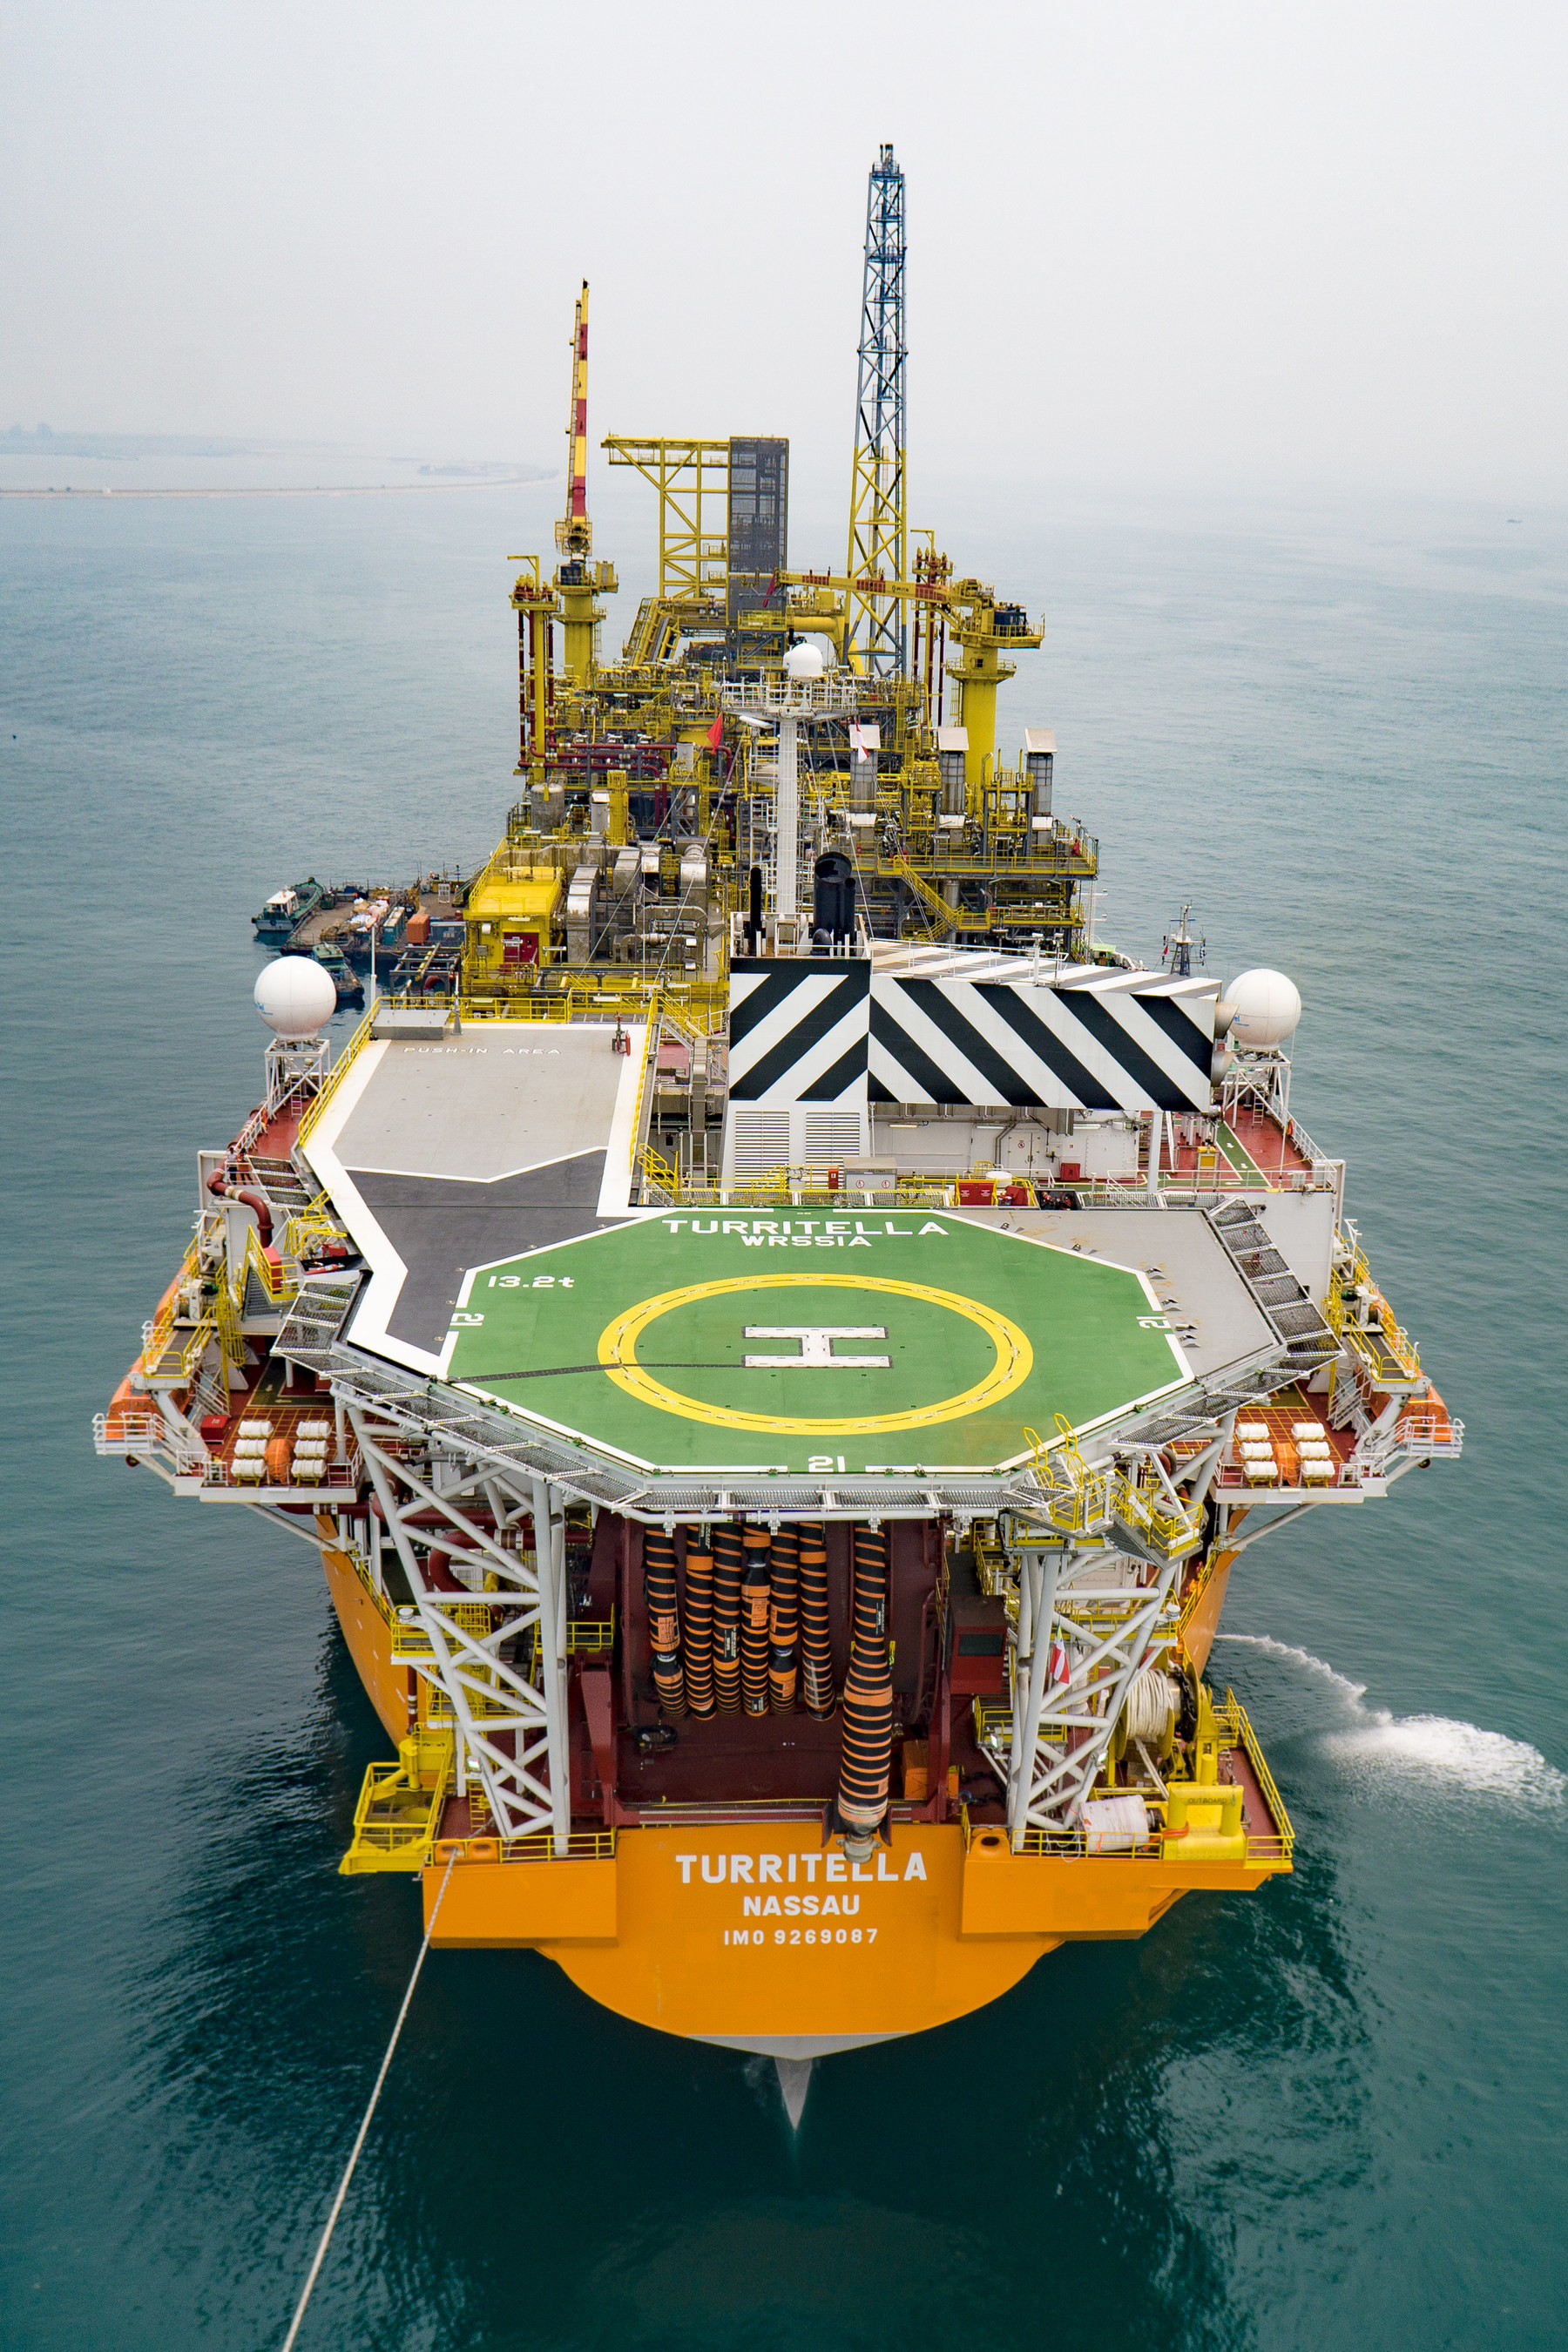 The host facility for the world's deepest offshore oil and gas project is a floating production, storage and offloading (FPSO) vessel and the thirteenth FPSO in Shell's global deep-water portfolio.